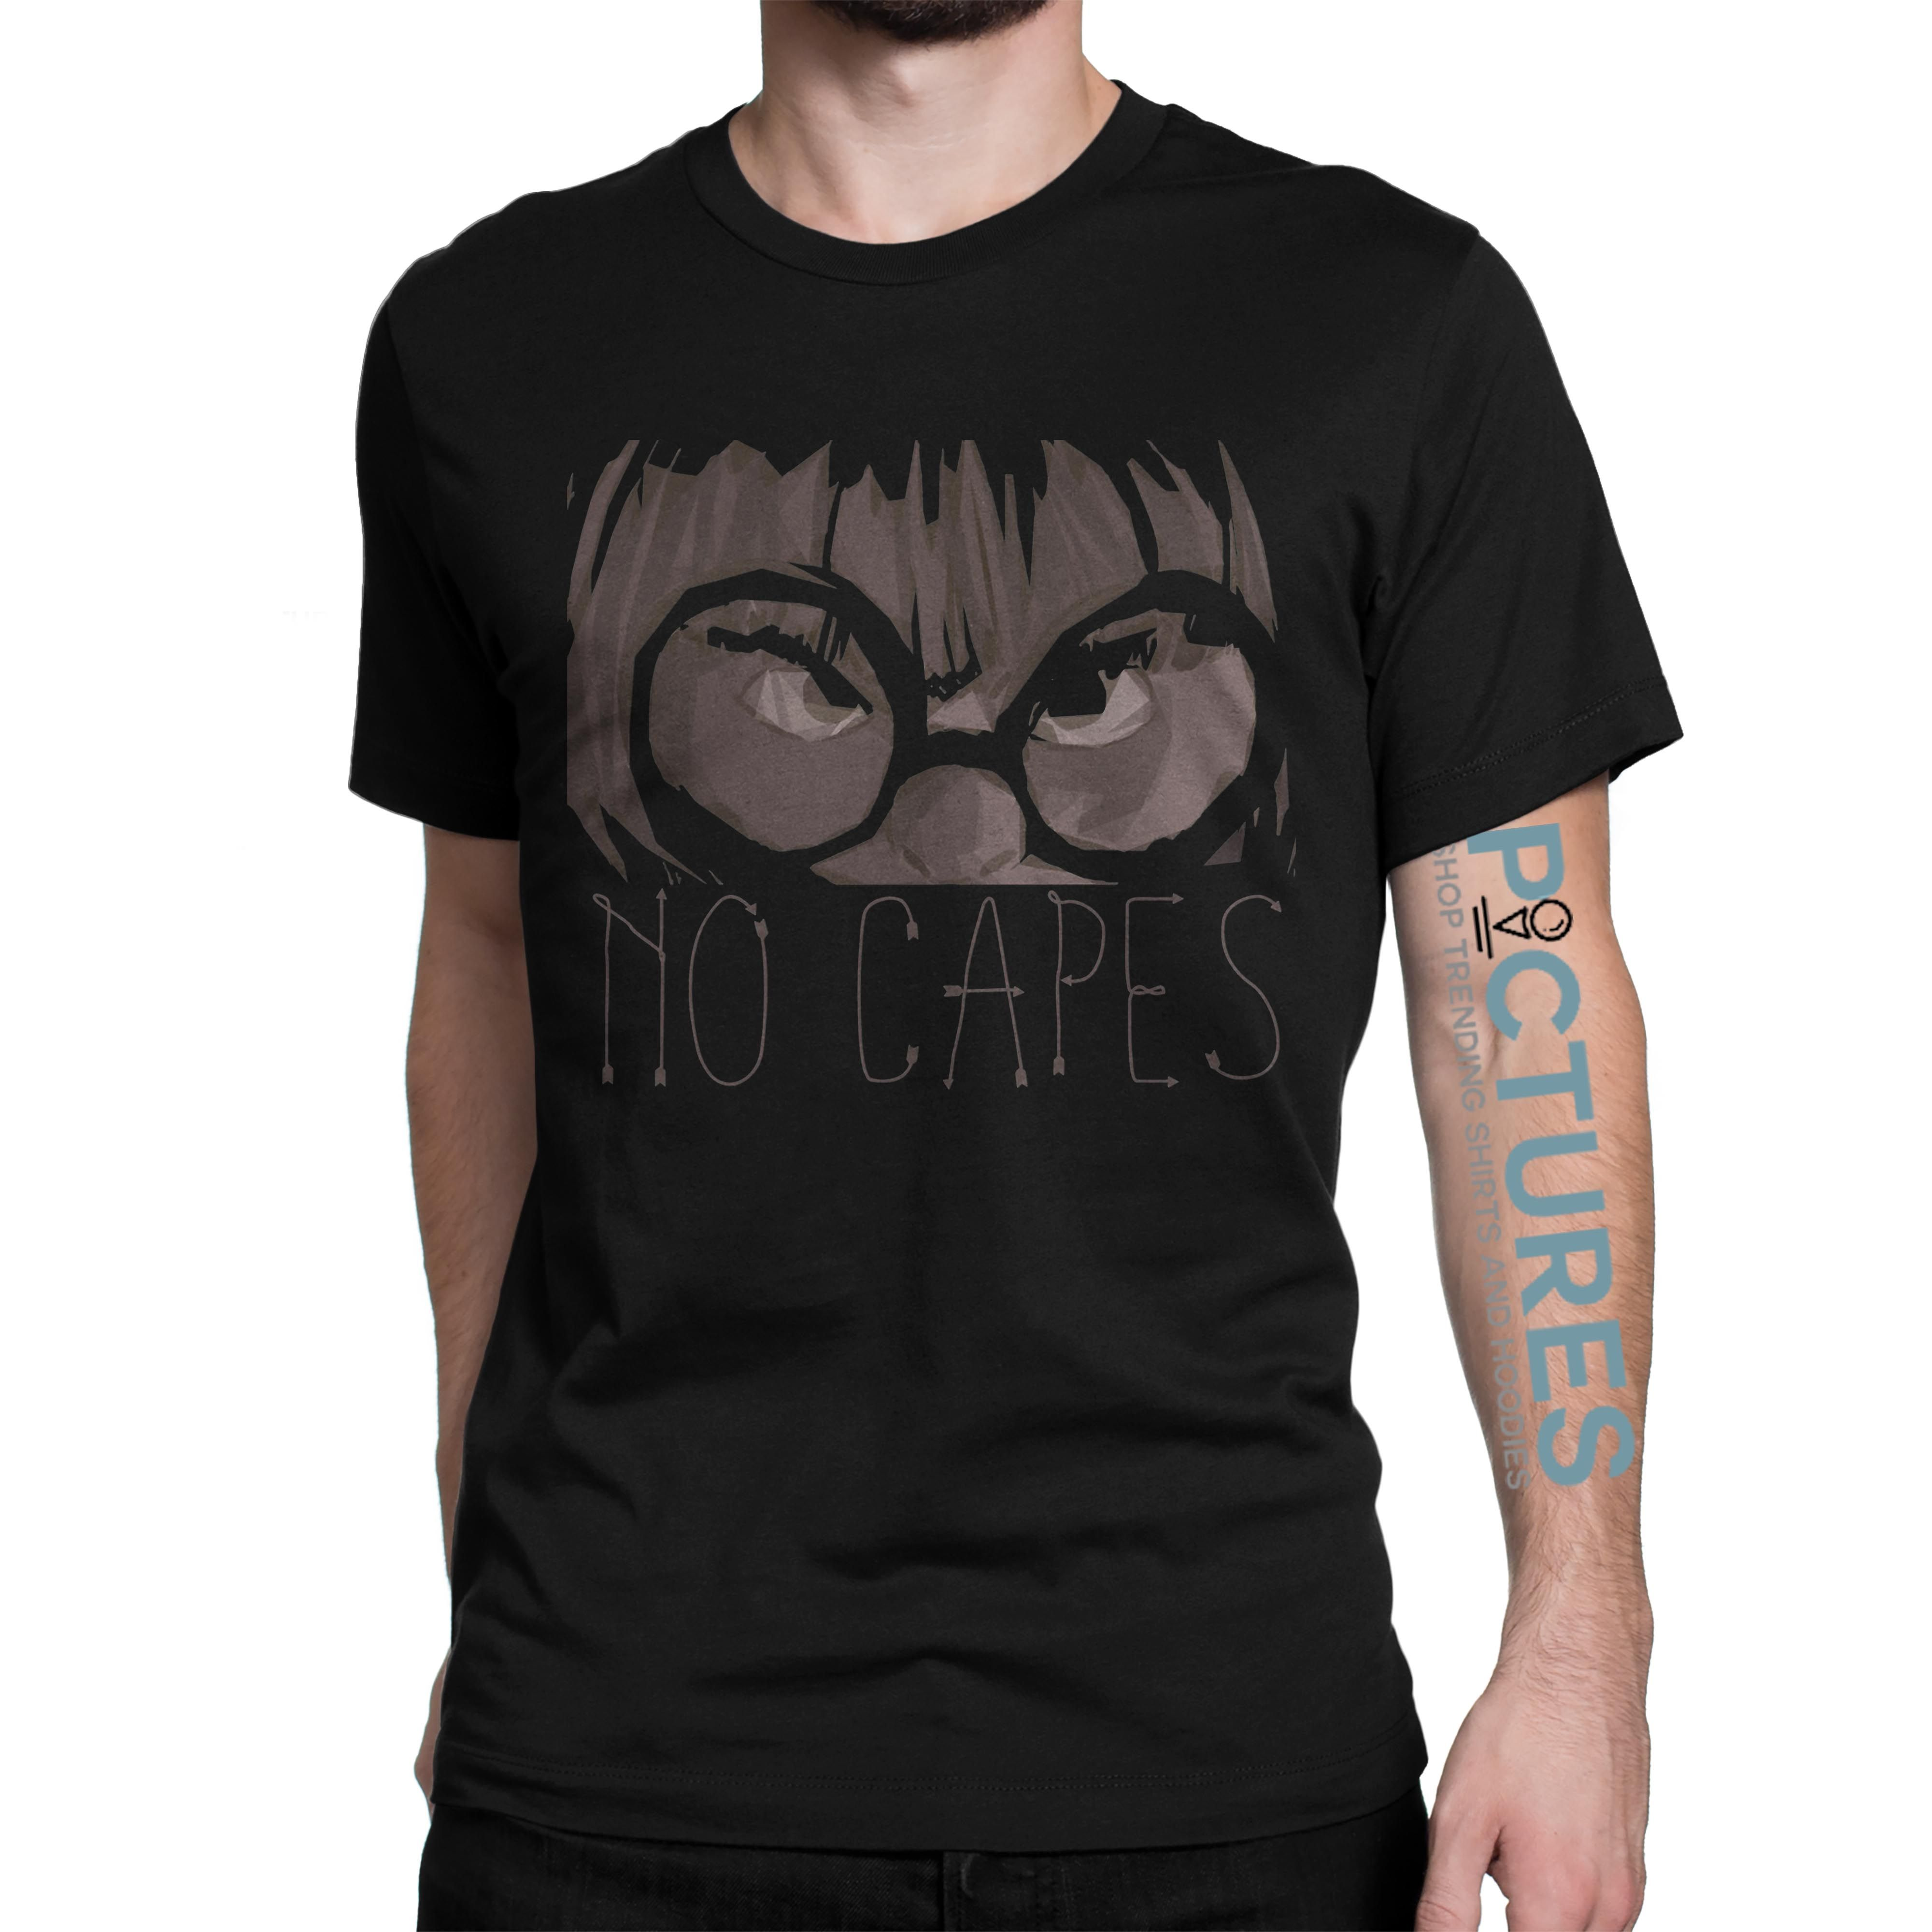 622ee58a1 Edna mode No capes Incredibles shirt | Picturestees Clothing | Edna ...